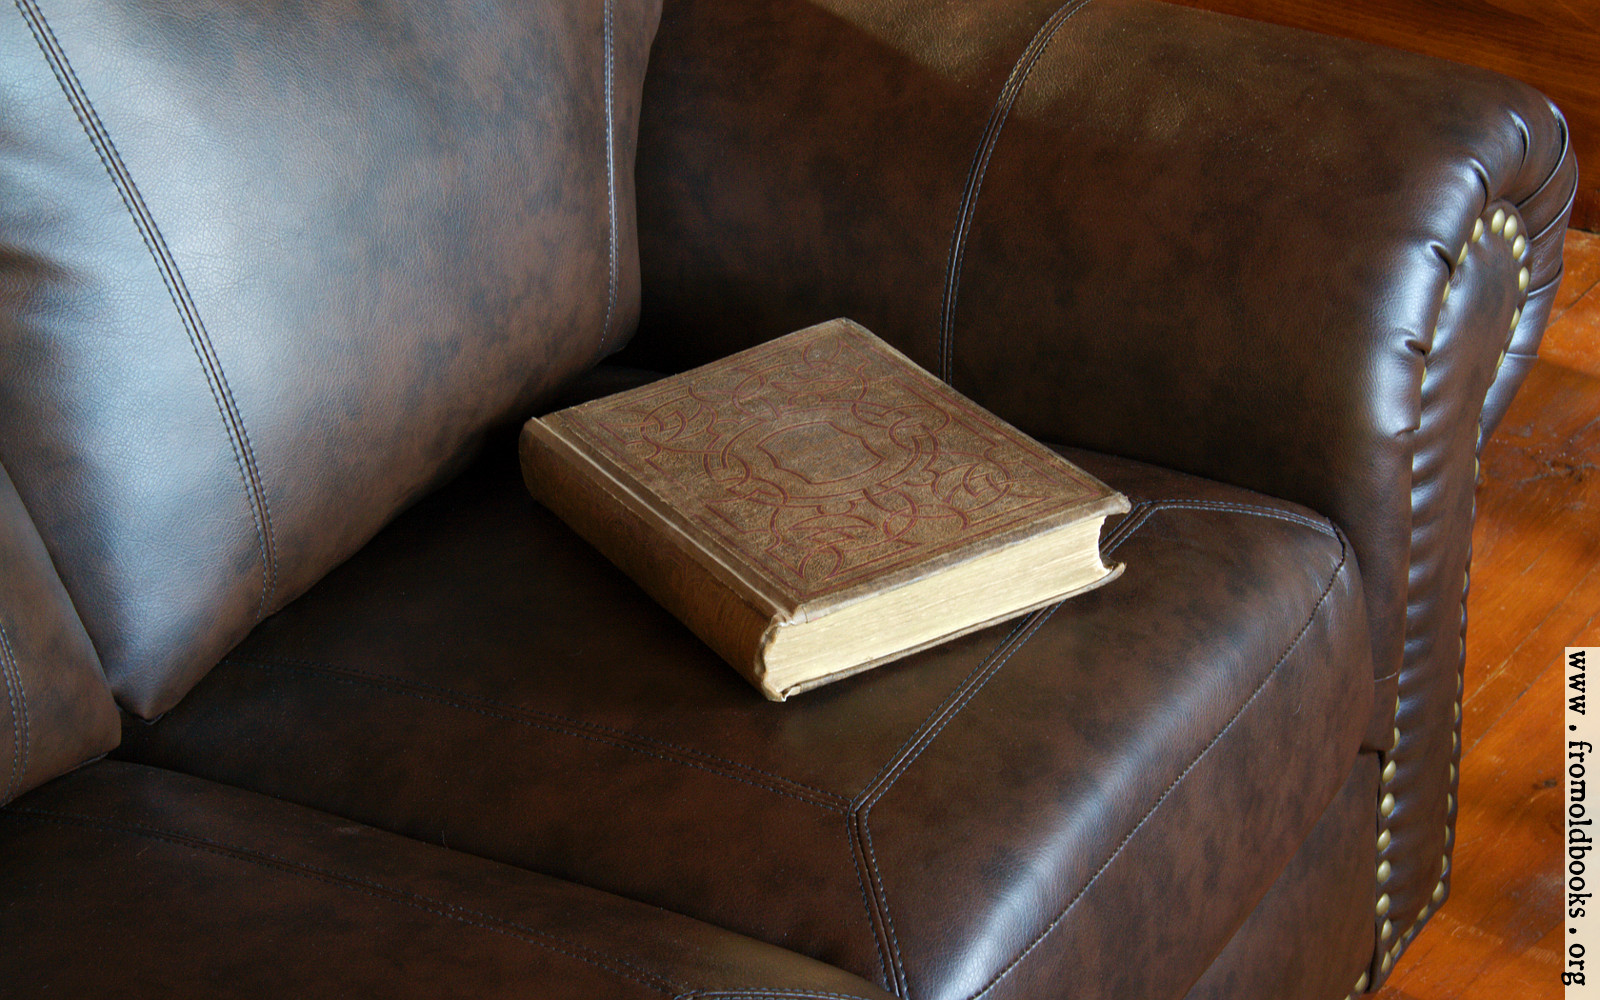 Victorian Book On Leather Couch